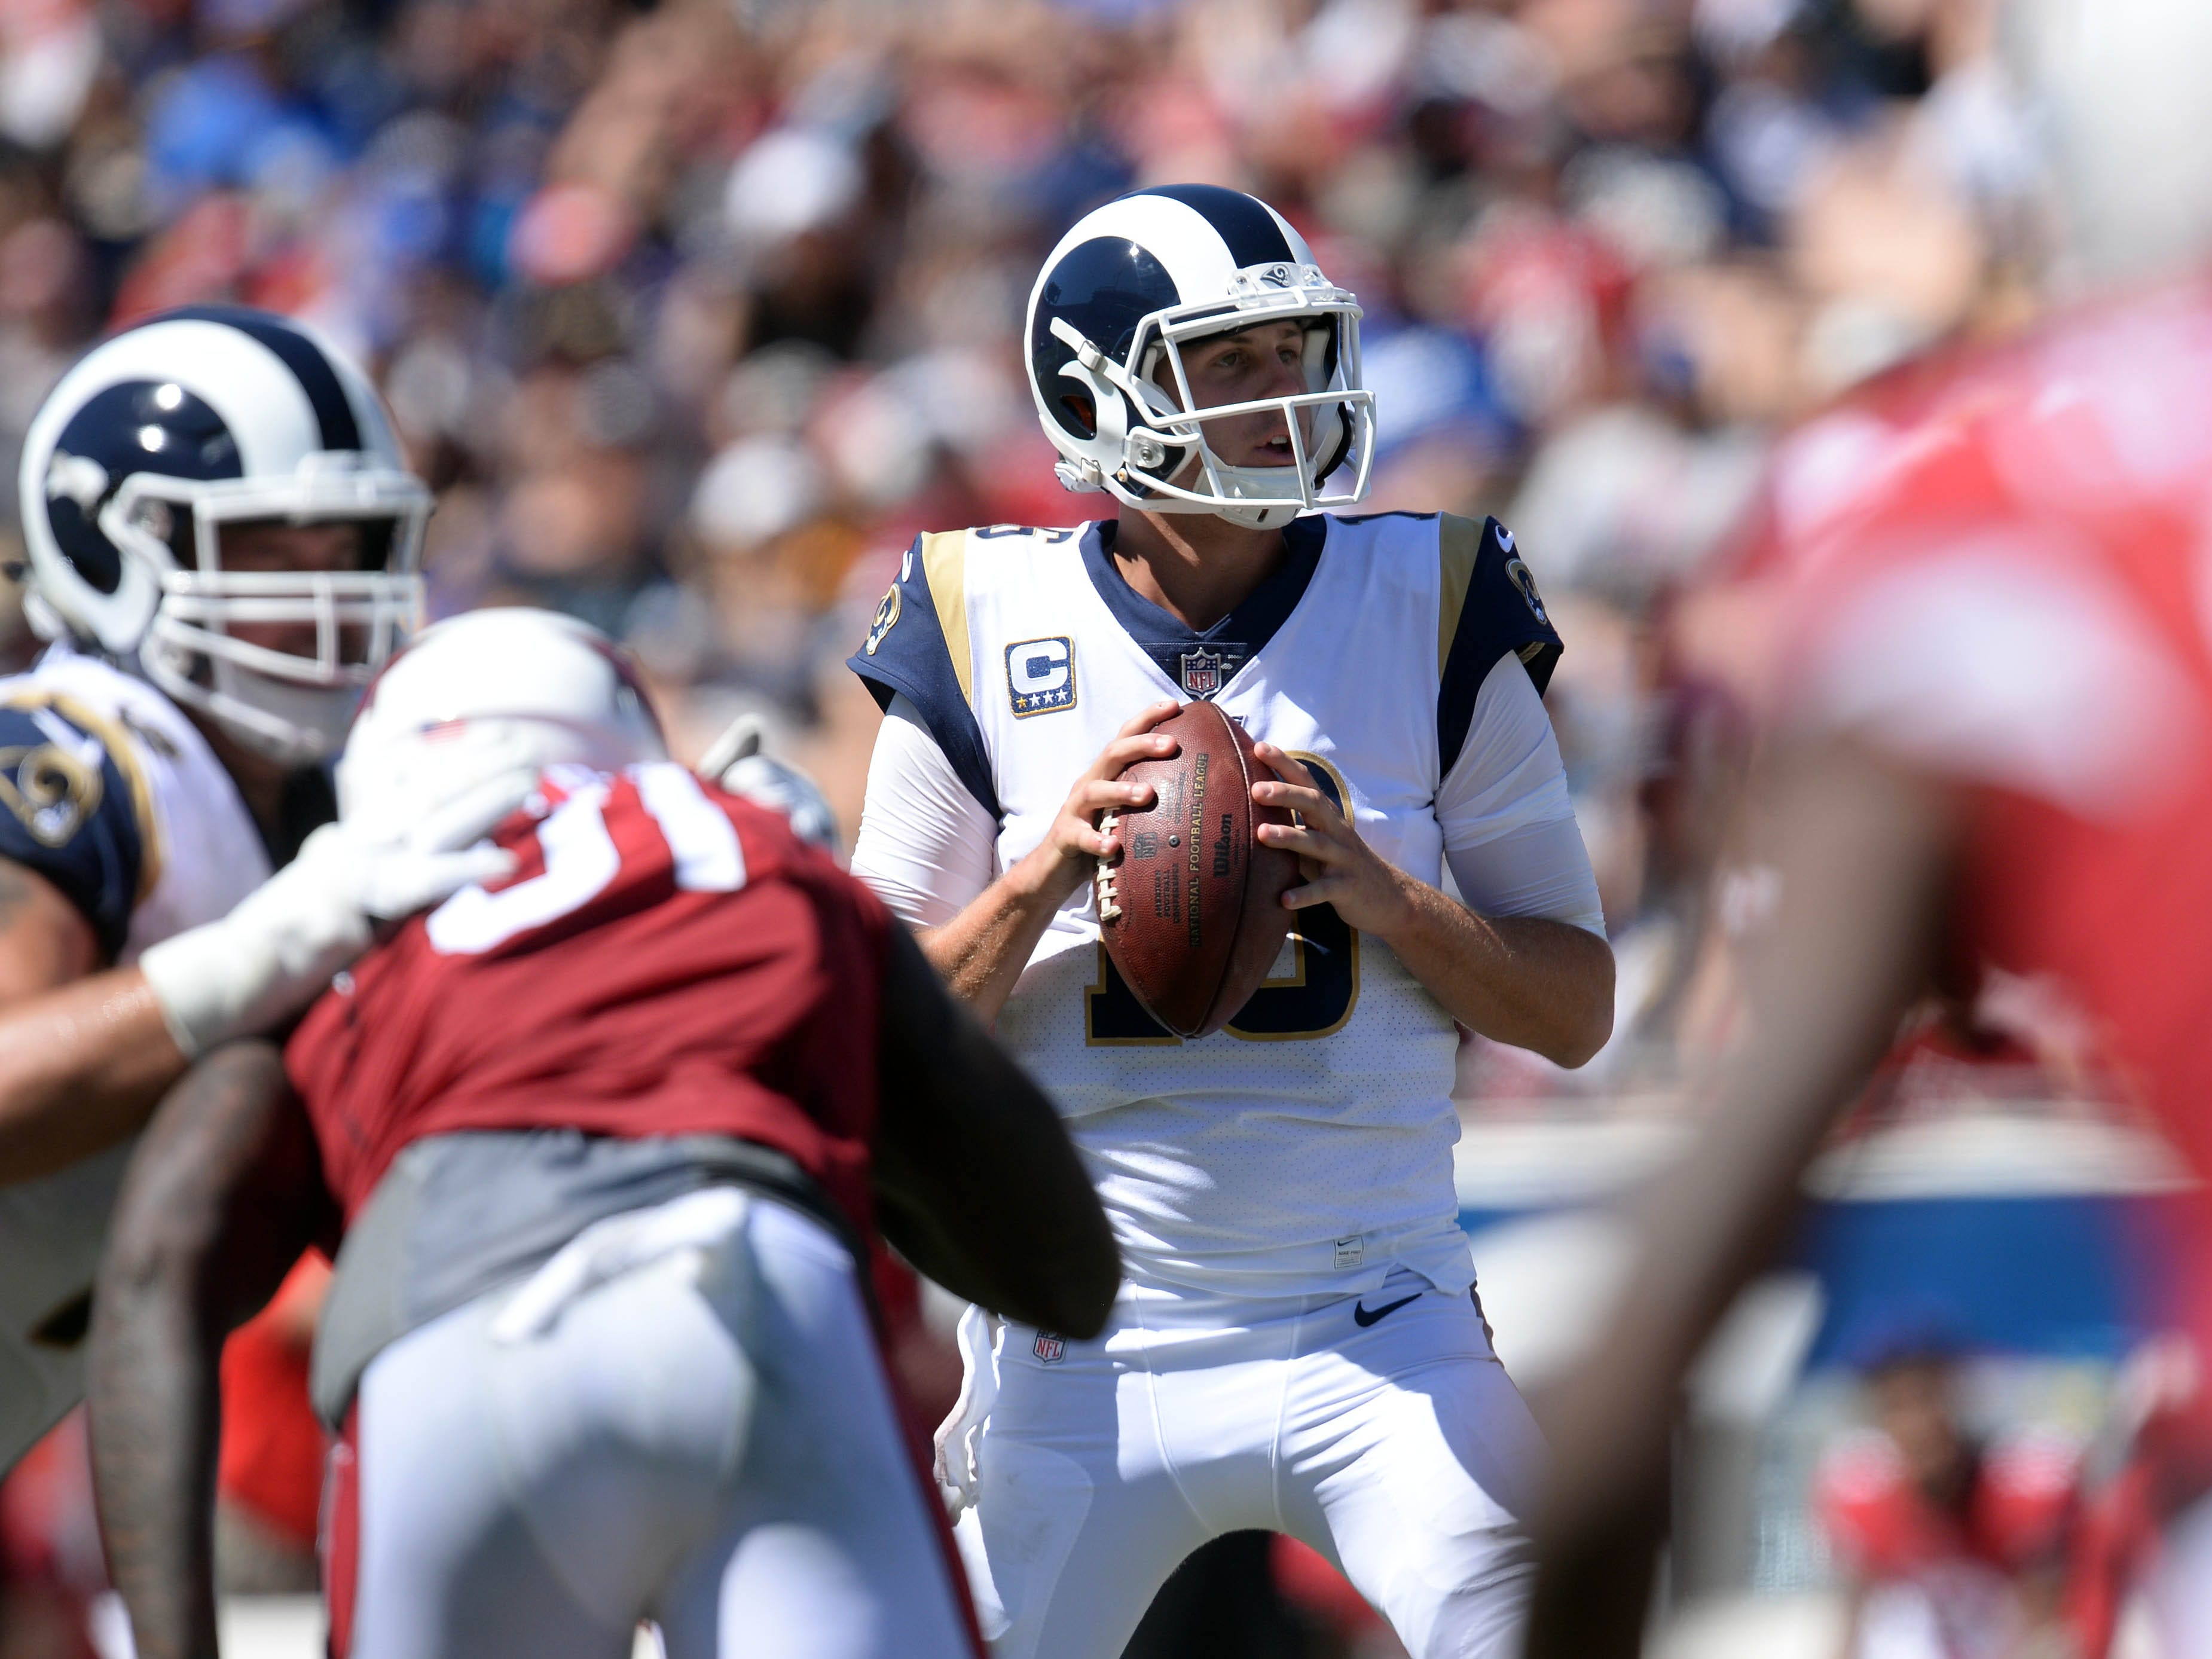 September 16, 2018; Los Angeles, CA, USA; Los Angeles Rams quarterback Jared Goff (16) drops back to pass against the Arizona Cardinals during the first half at the Los Angeles Memorial Coliseum. Mandatory Credit: Gary A. Vasquez-USA TODAY Sports